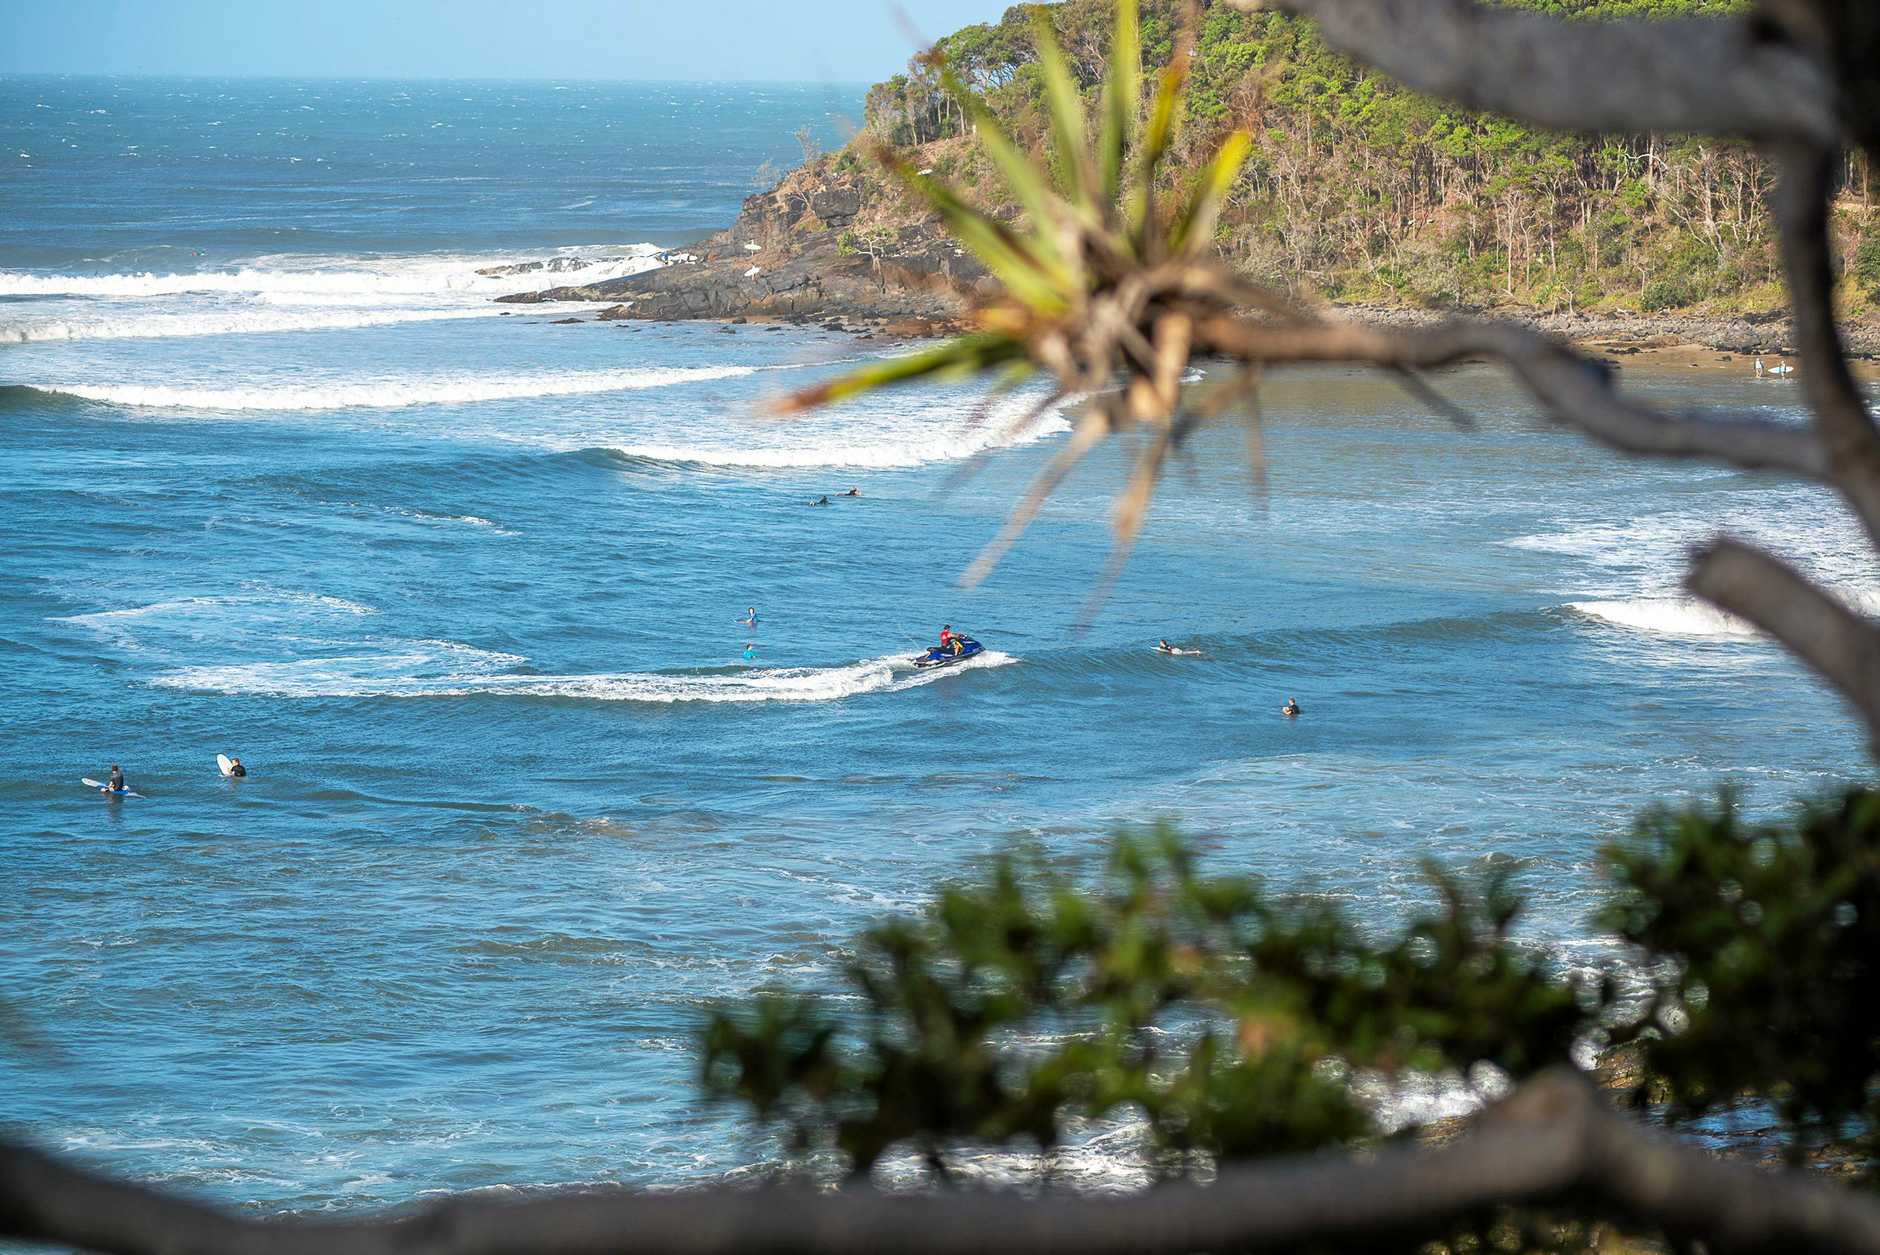 A jet ski rider picks up a surfer inside the line up at Tea Tree, on their way to another paddle-free wave during the Cyclone Oma swell.